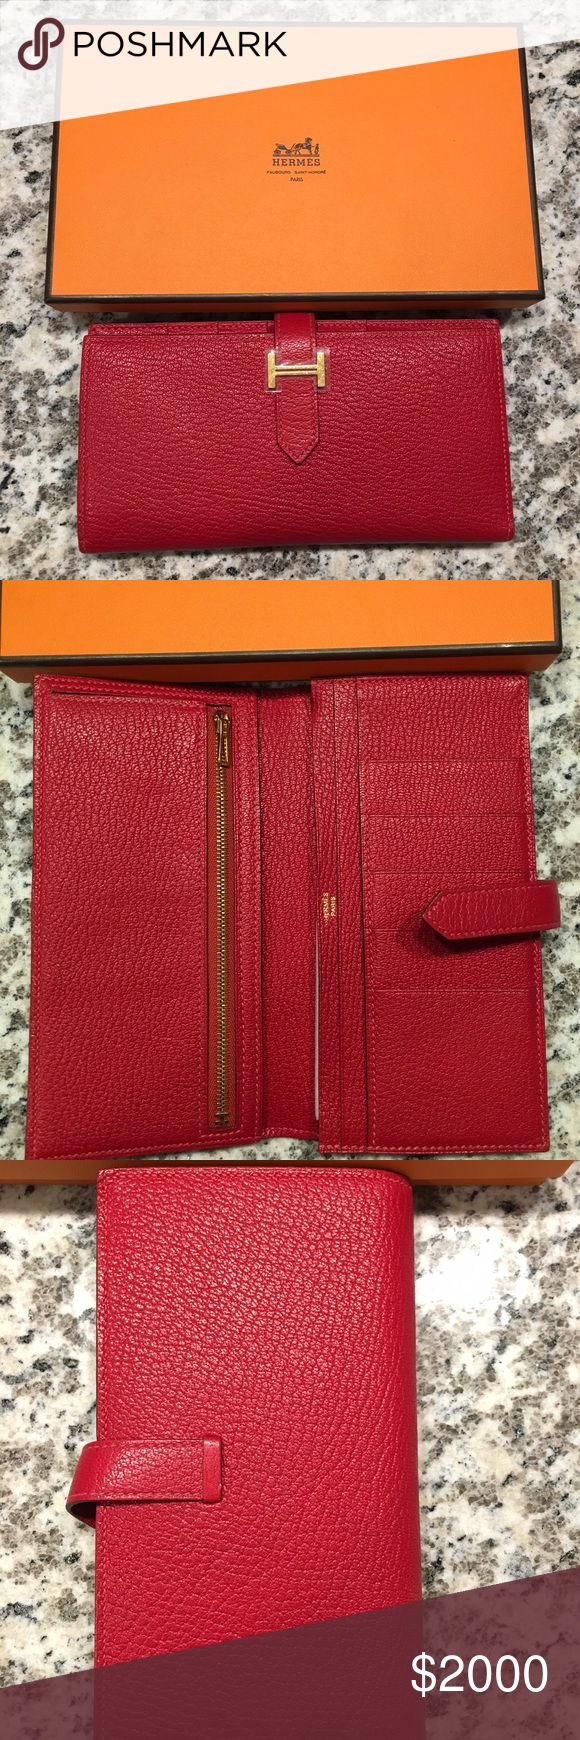 Hermes wallet In color Q5. Authentic. Like new. Hermes Bags Wallets